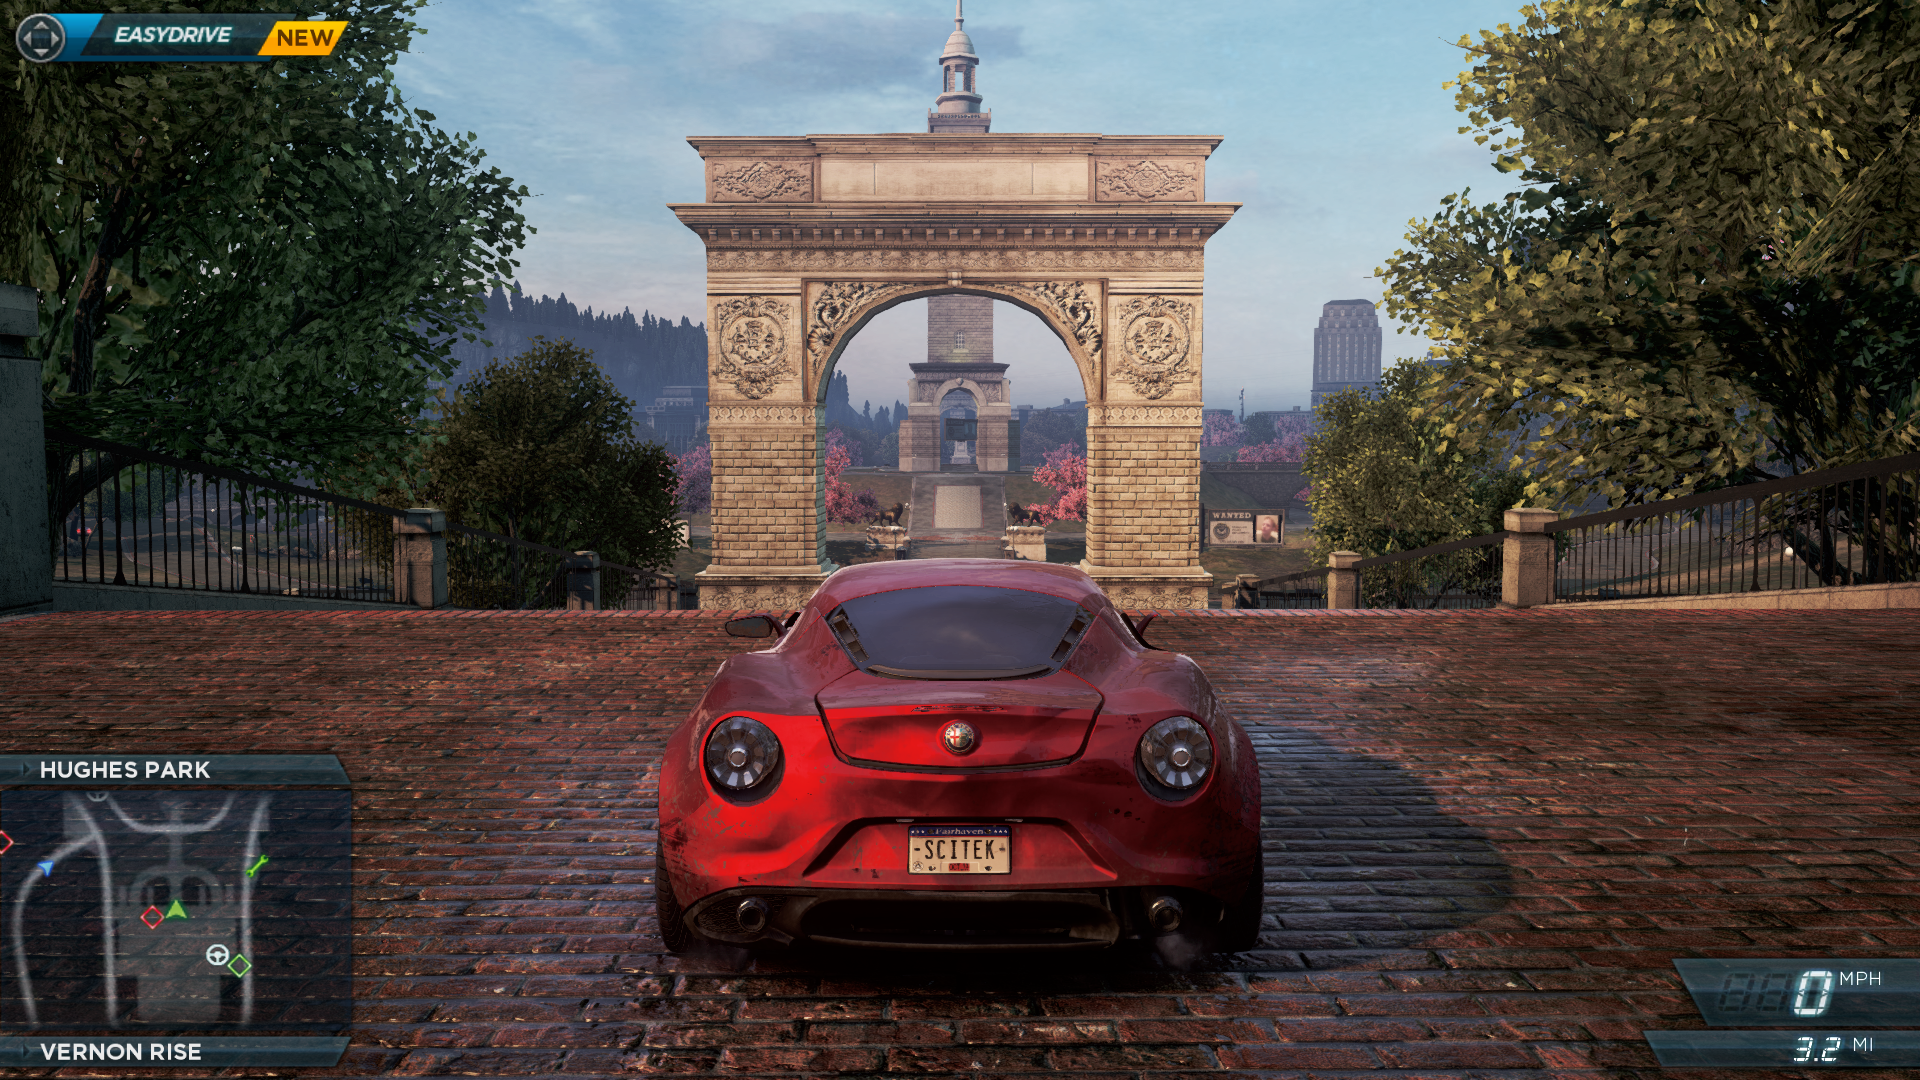 nfs132012-12-1812-31-zoxtp.png